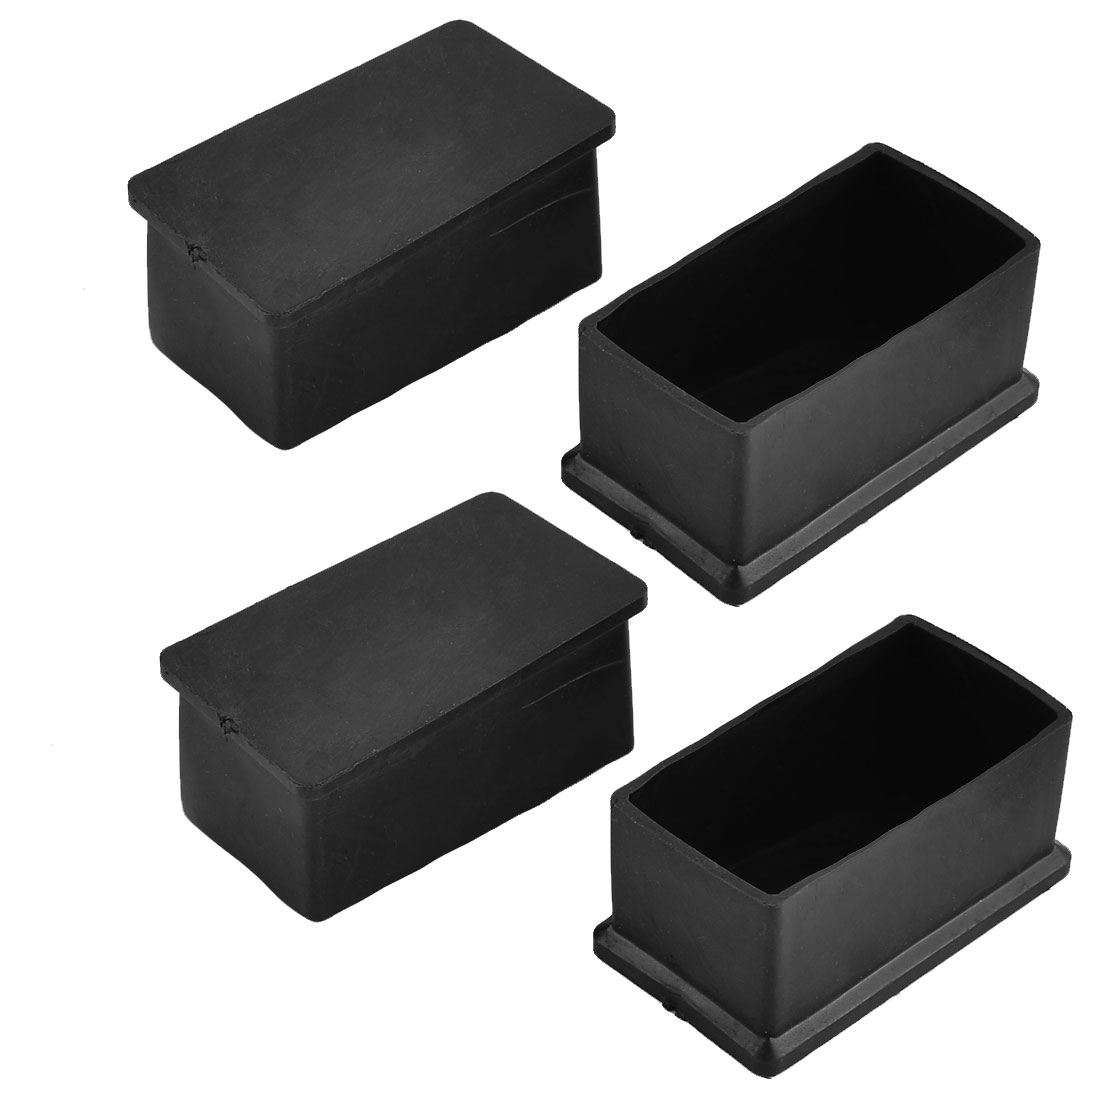 60mm x 30mm Rubber Rectangle Shaped Furniture Table Foot Cover Caps Black 4pcs